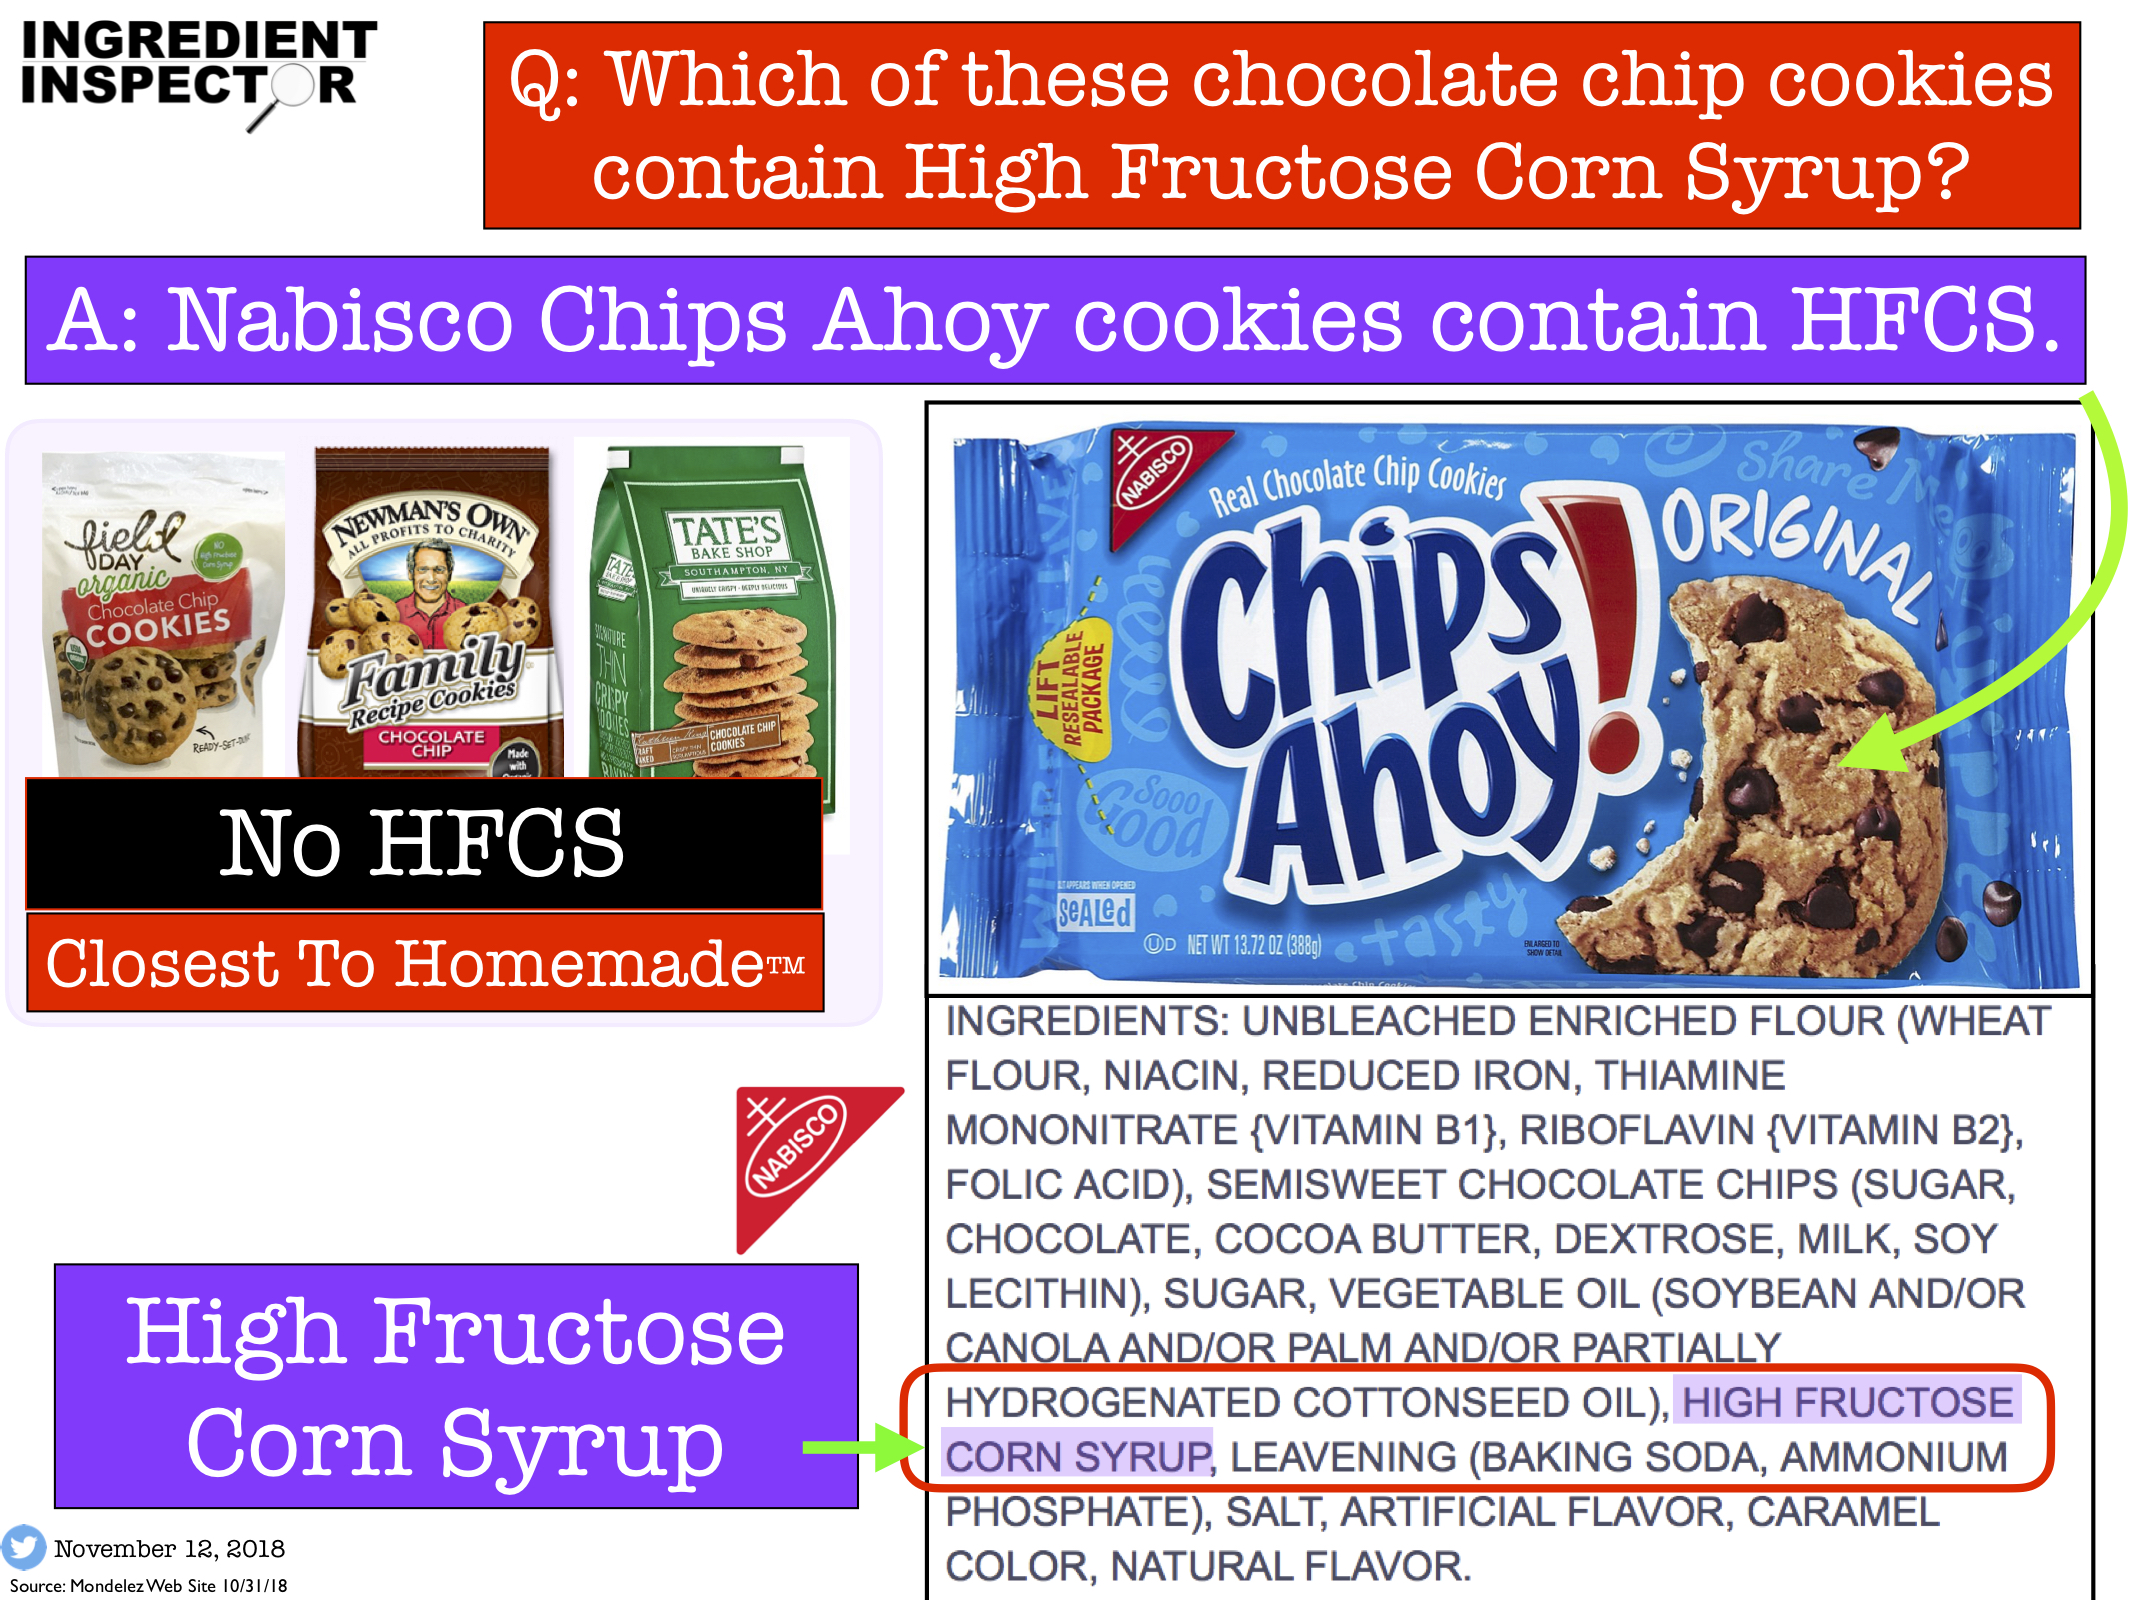 Ingredient Inspector Quiz Answer CC Cookies HFCS Chips Ahoy.jpg